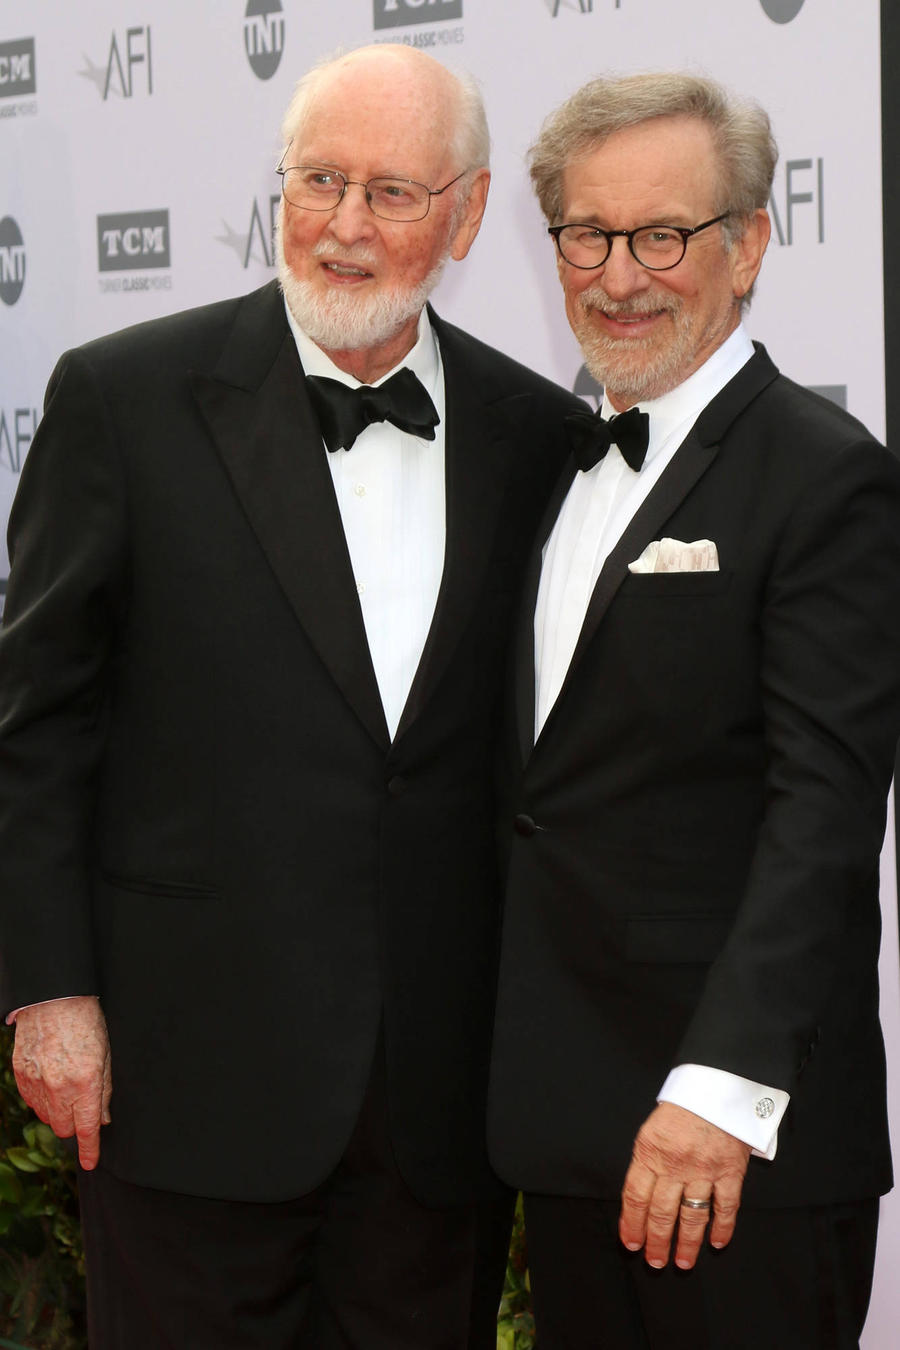 Steven Spielberg Confirms Return Of Indiana Jones Composer John Williams